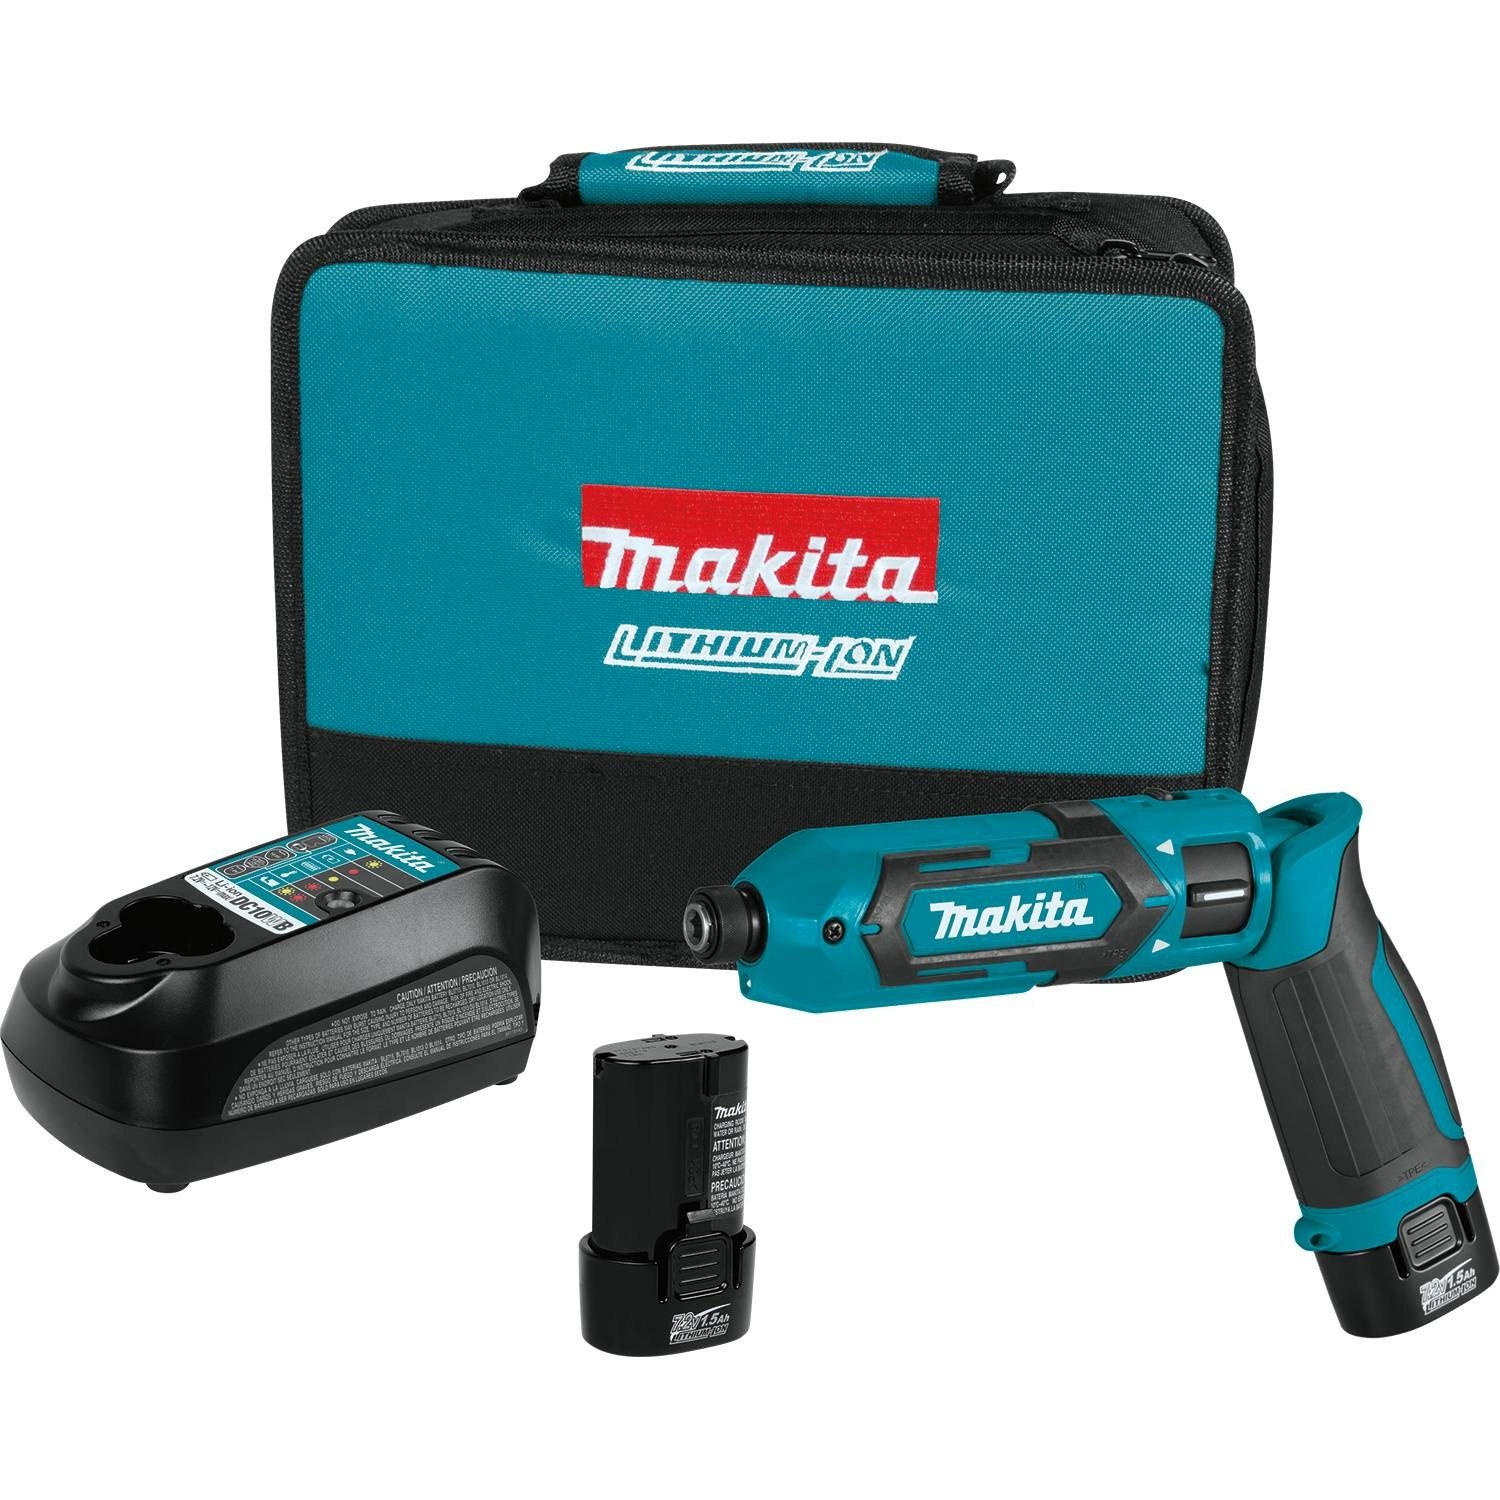 Makita TD022DSE 7.2V Lithium-Ion Cordless 1/4'' Hex Impact Driver Kit